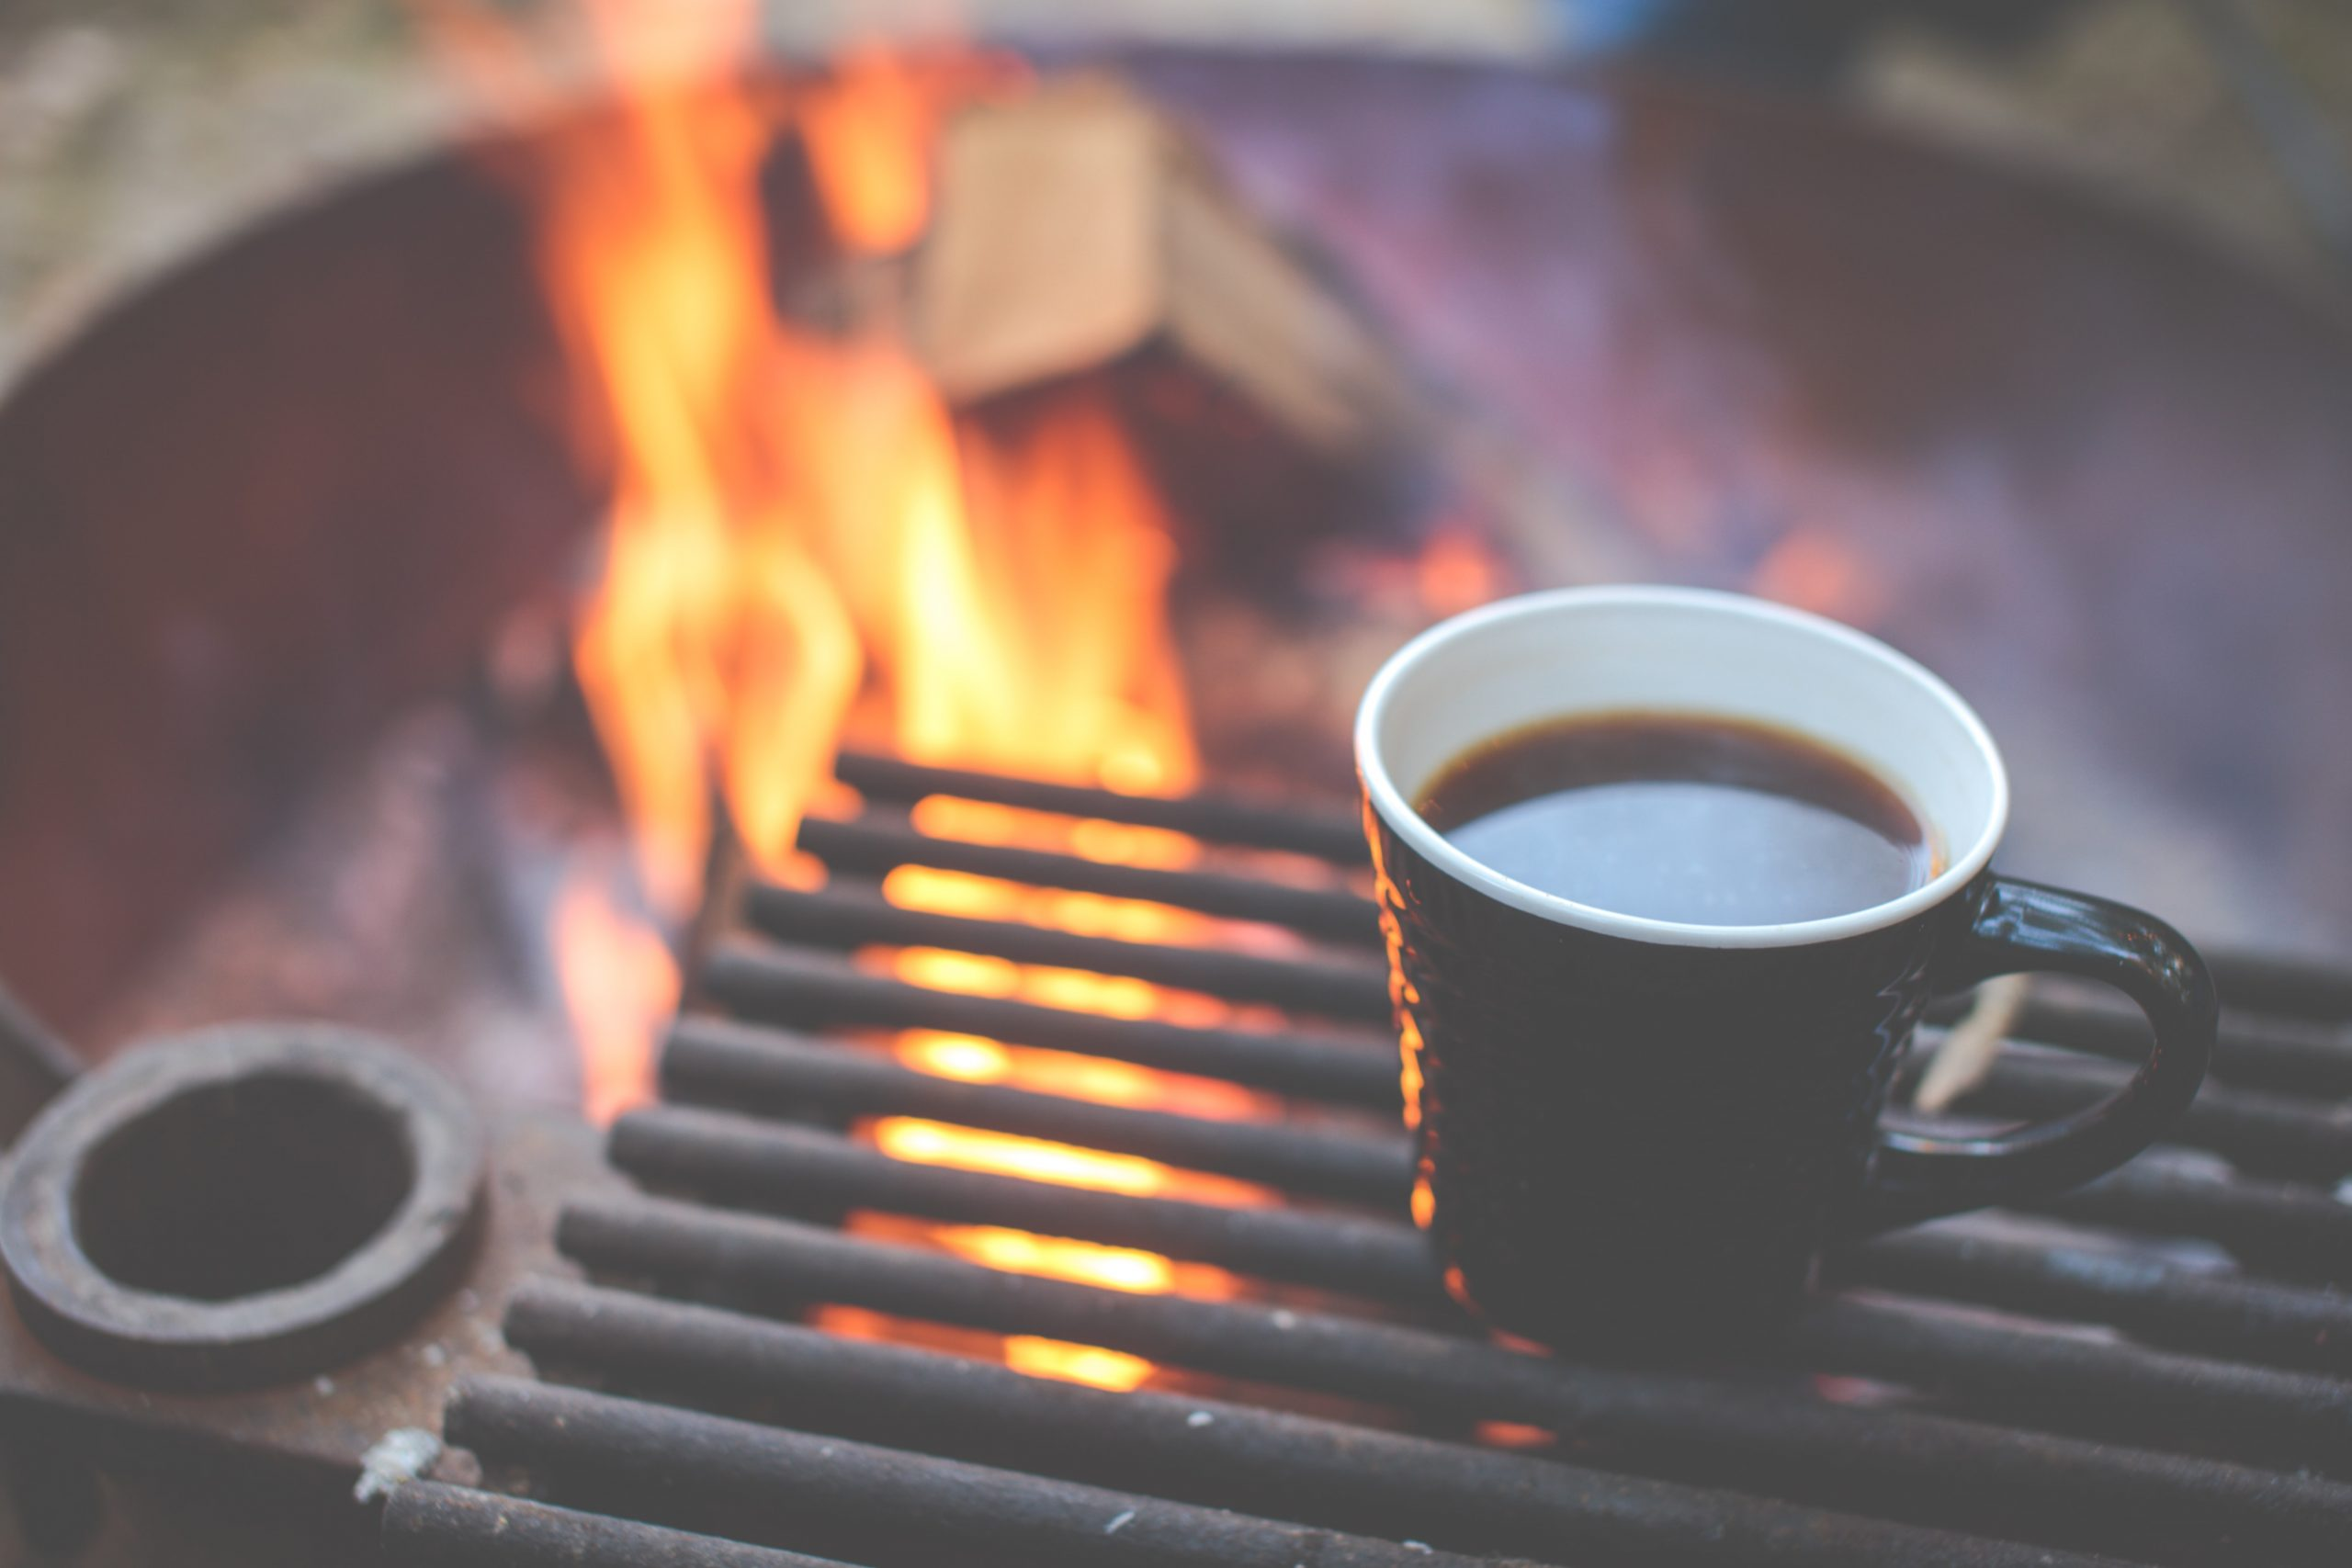 High on the list of essential camping gear is a good ceramic or enamel mug. Here are 8 high-quality camping cups that we love. Enjoy!